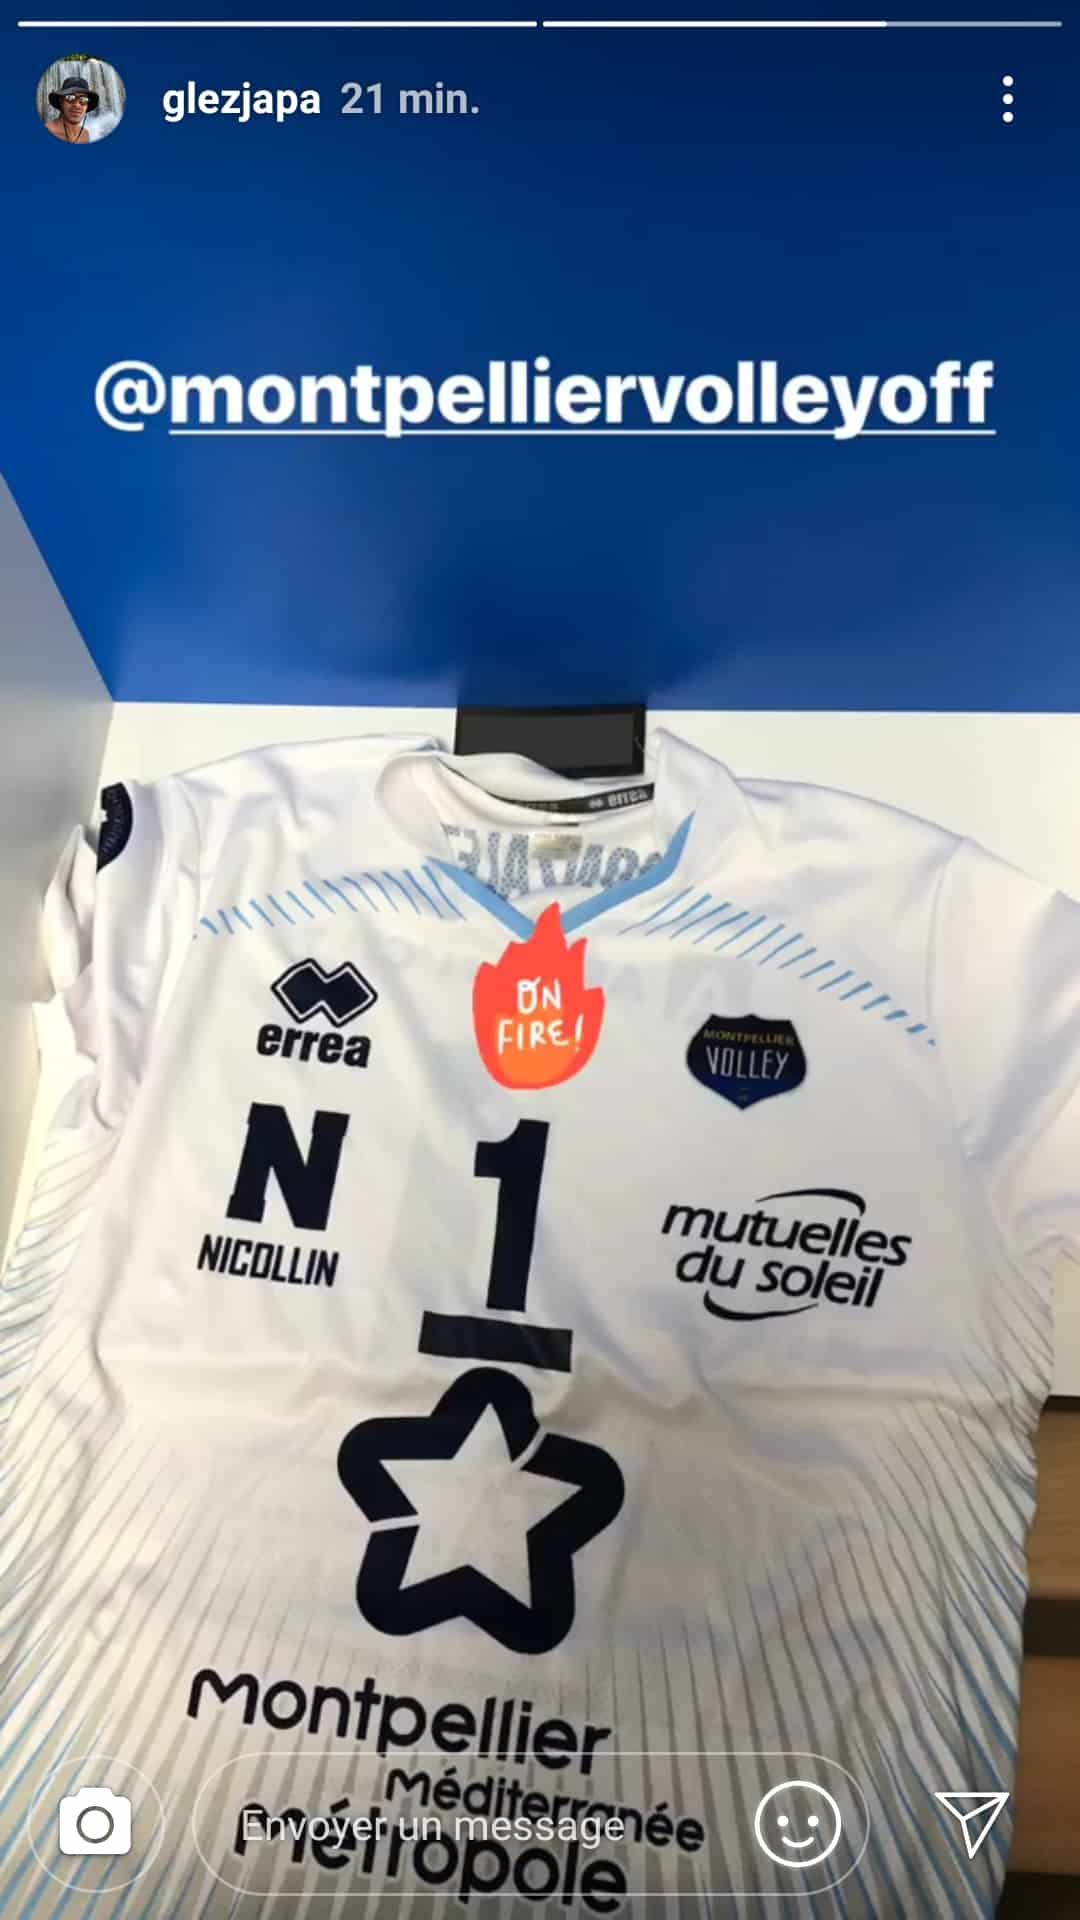 nouveau-maillot-volley-montpellier-volley-UC-errea-2018-2019-LAM-3